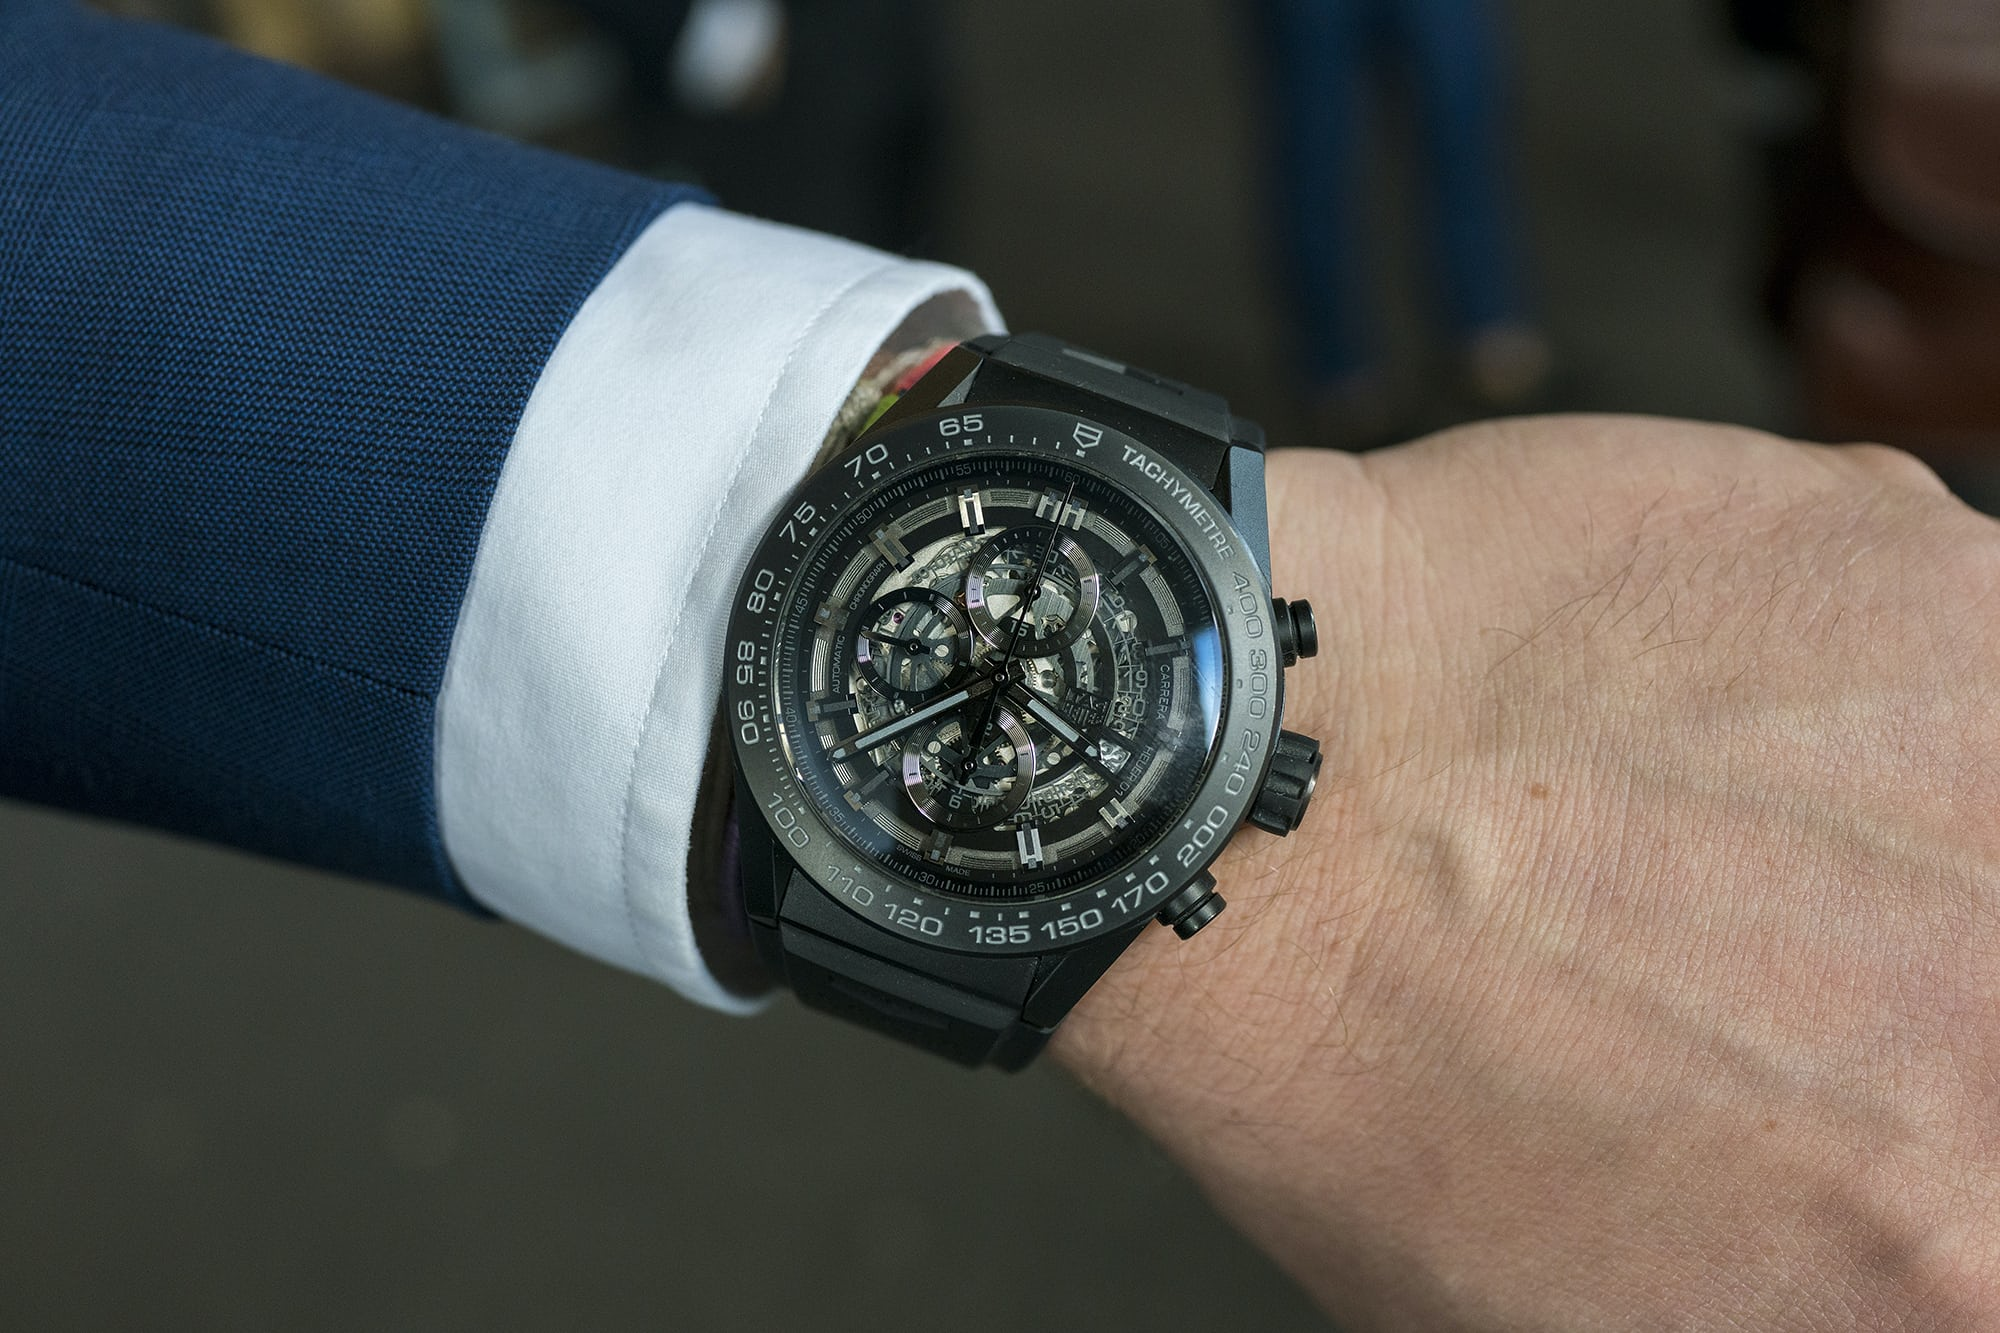 Photo Report: The Fashion And Watches Of Baselworld 2018 Photo Report: The Fashion And Watches Of Baselworld 2018 DSC00851 copy